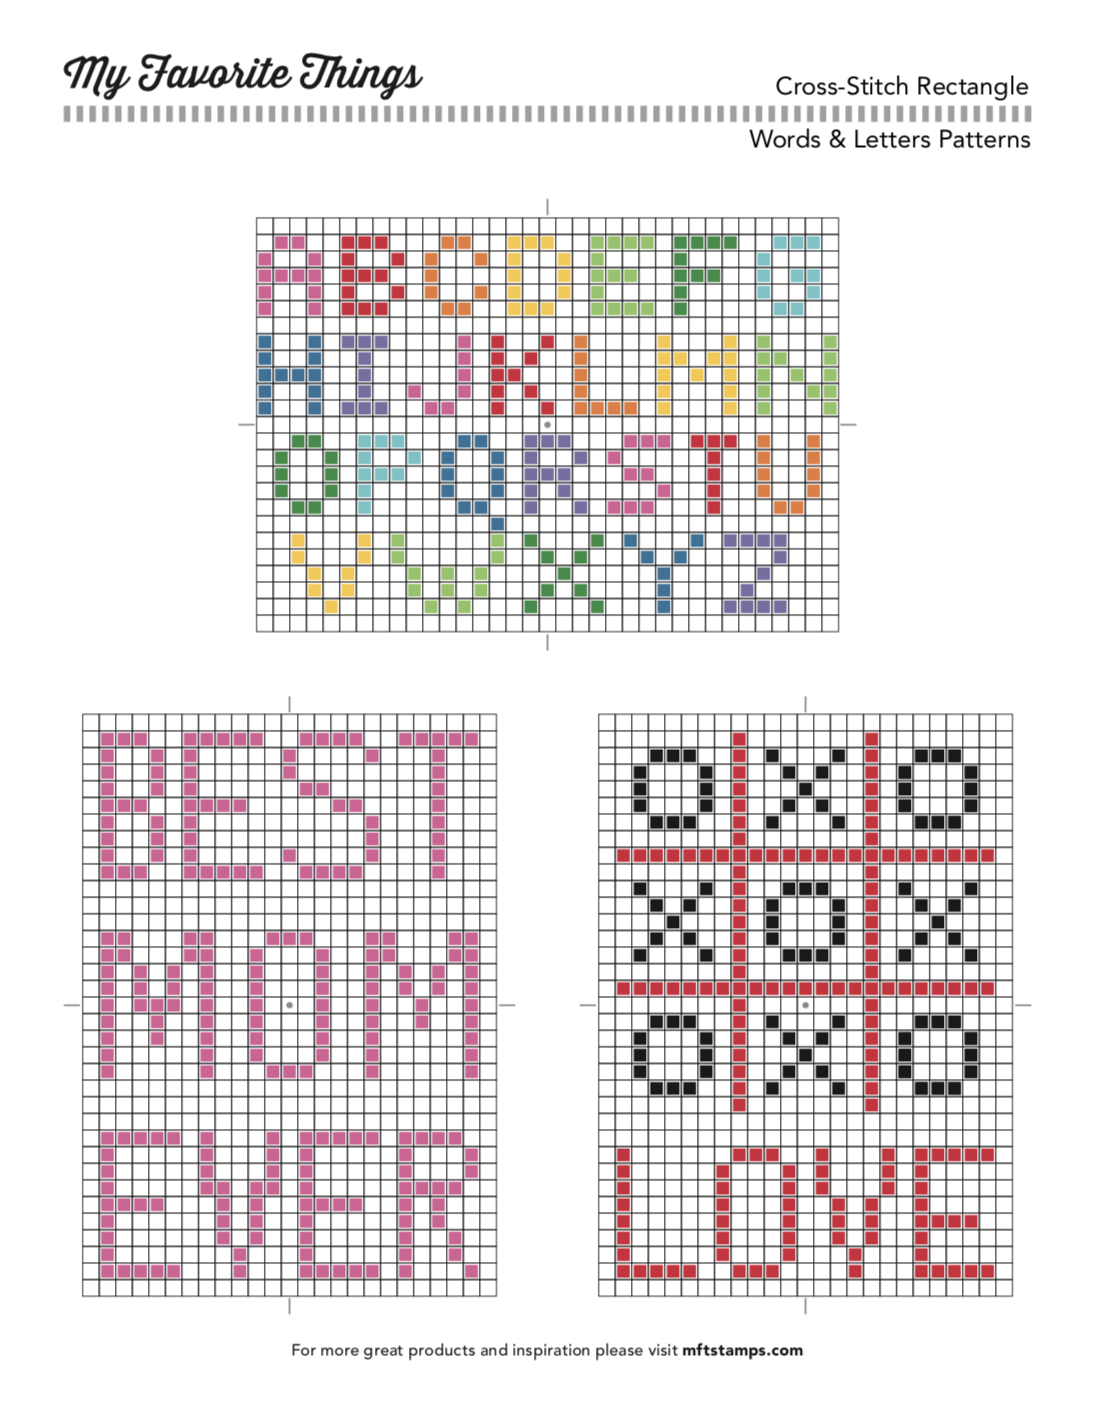 MFT Printable Resources | Cross-Stitch Printables | | Bordado ...